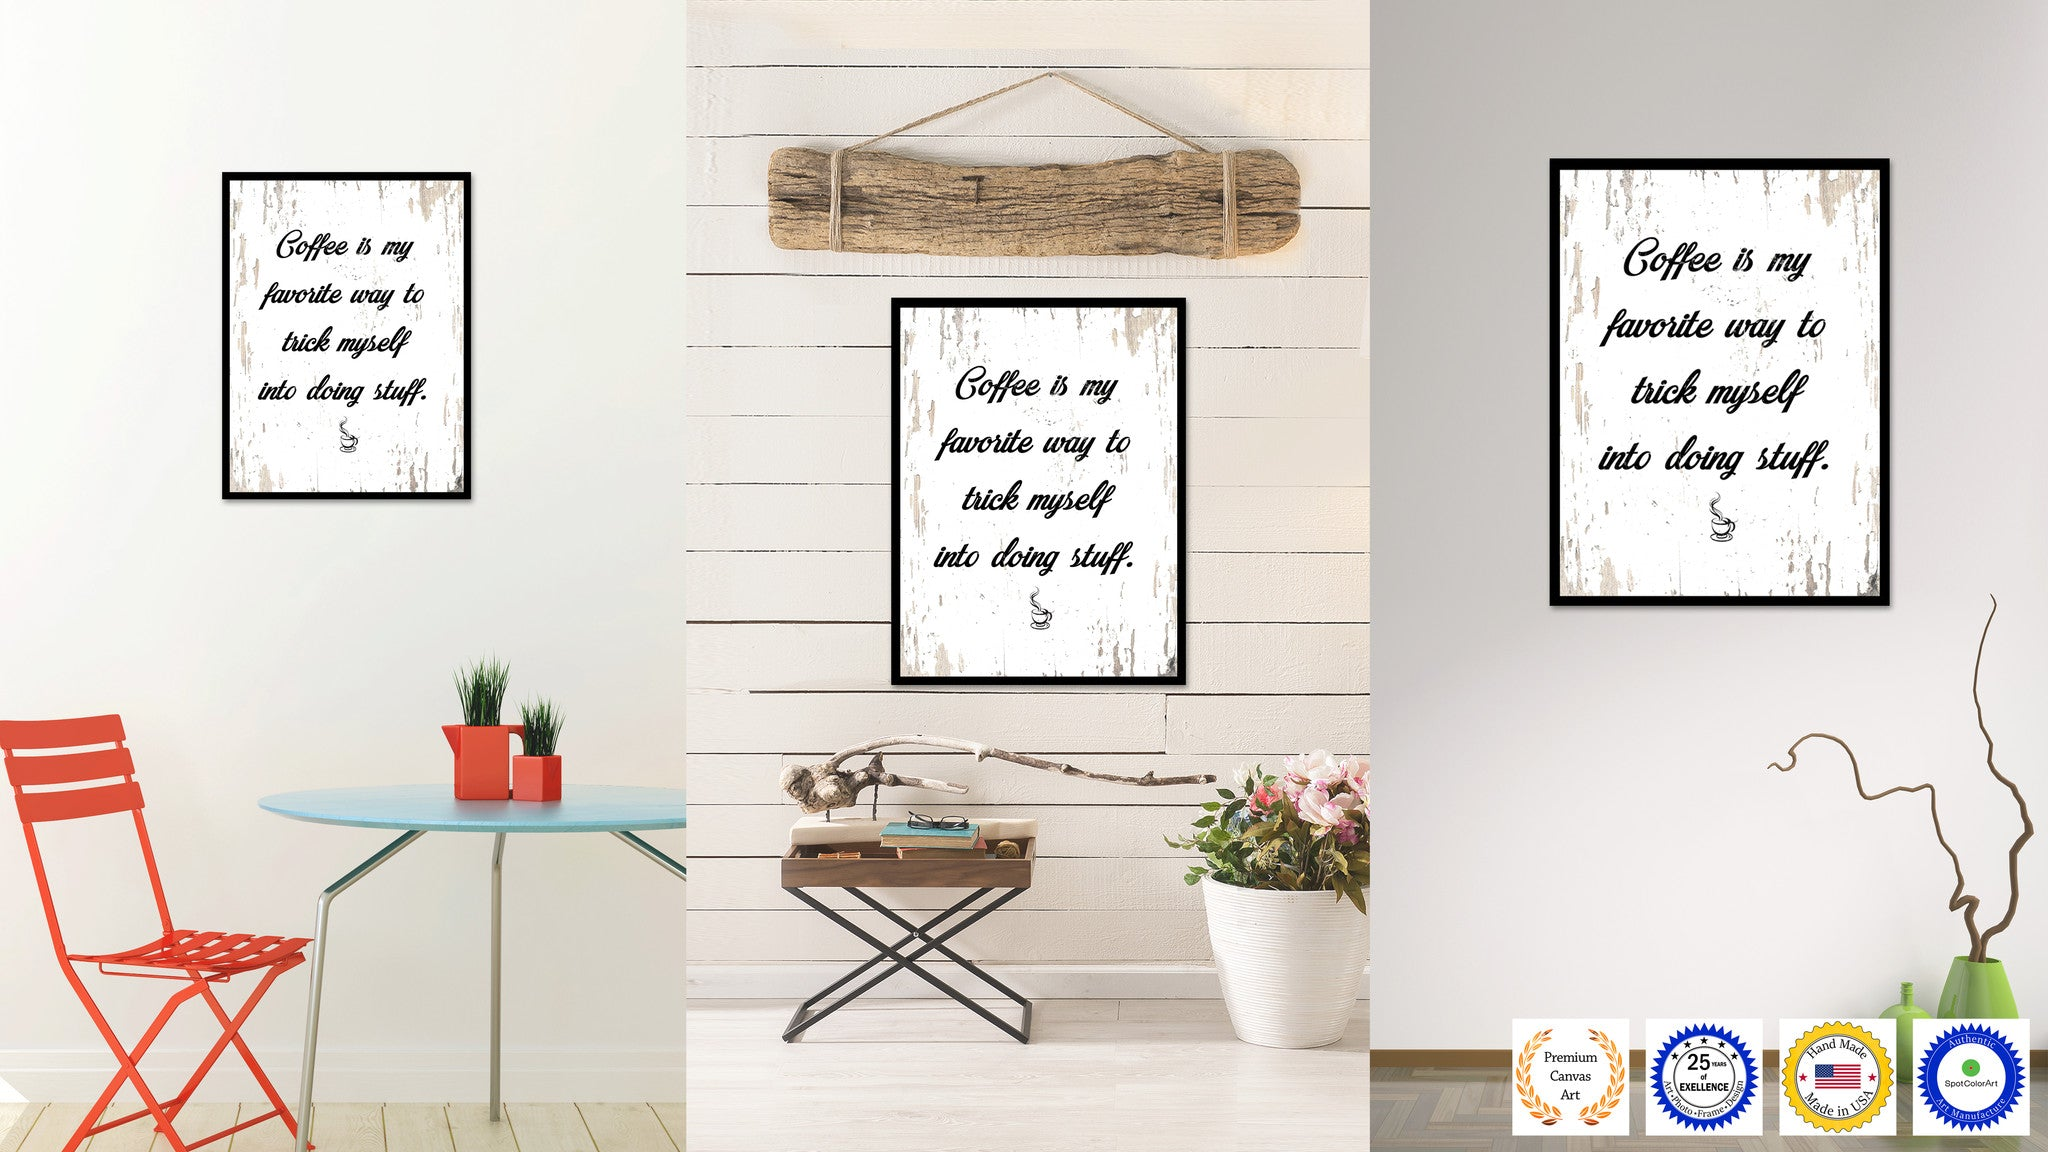 Coffee Is My Favorite Way To Trick Myself Into Doing Stuff Quote Saying Canvas Print with Picture Frame